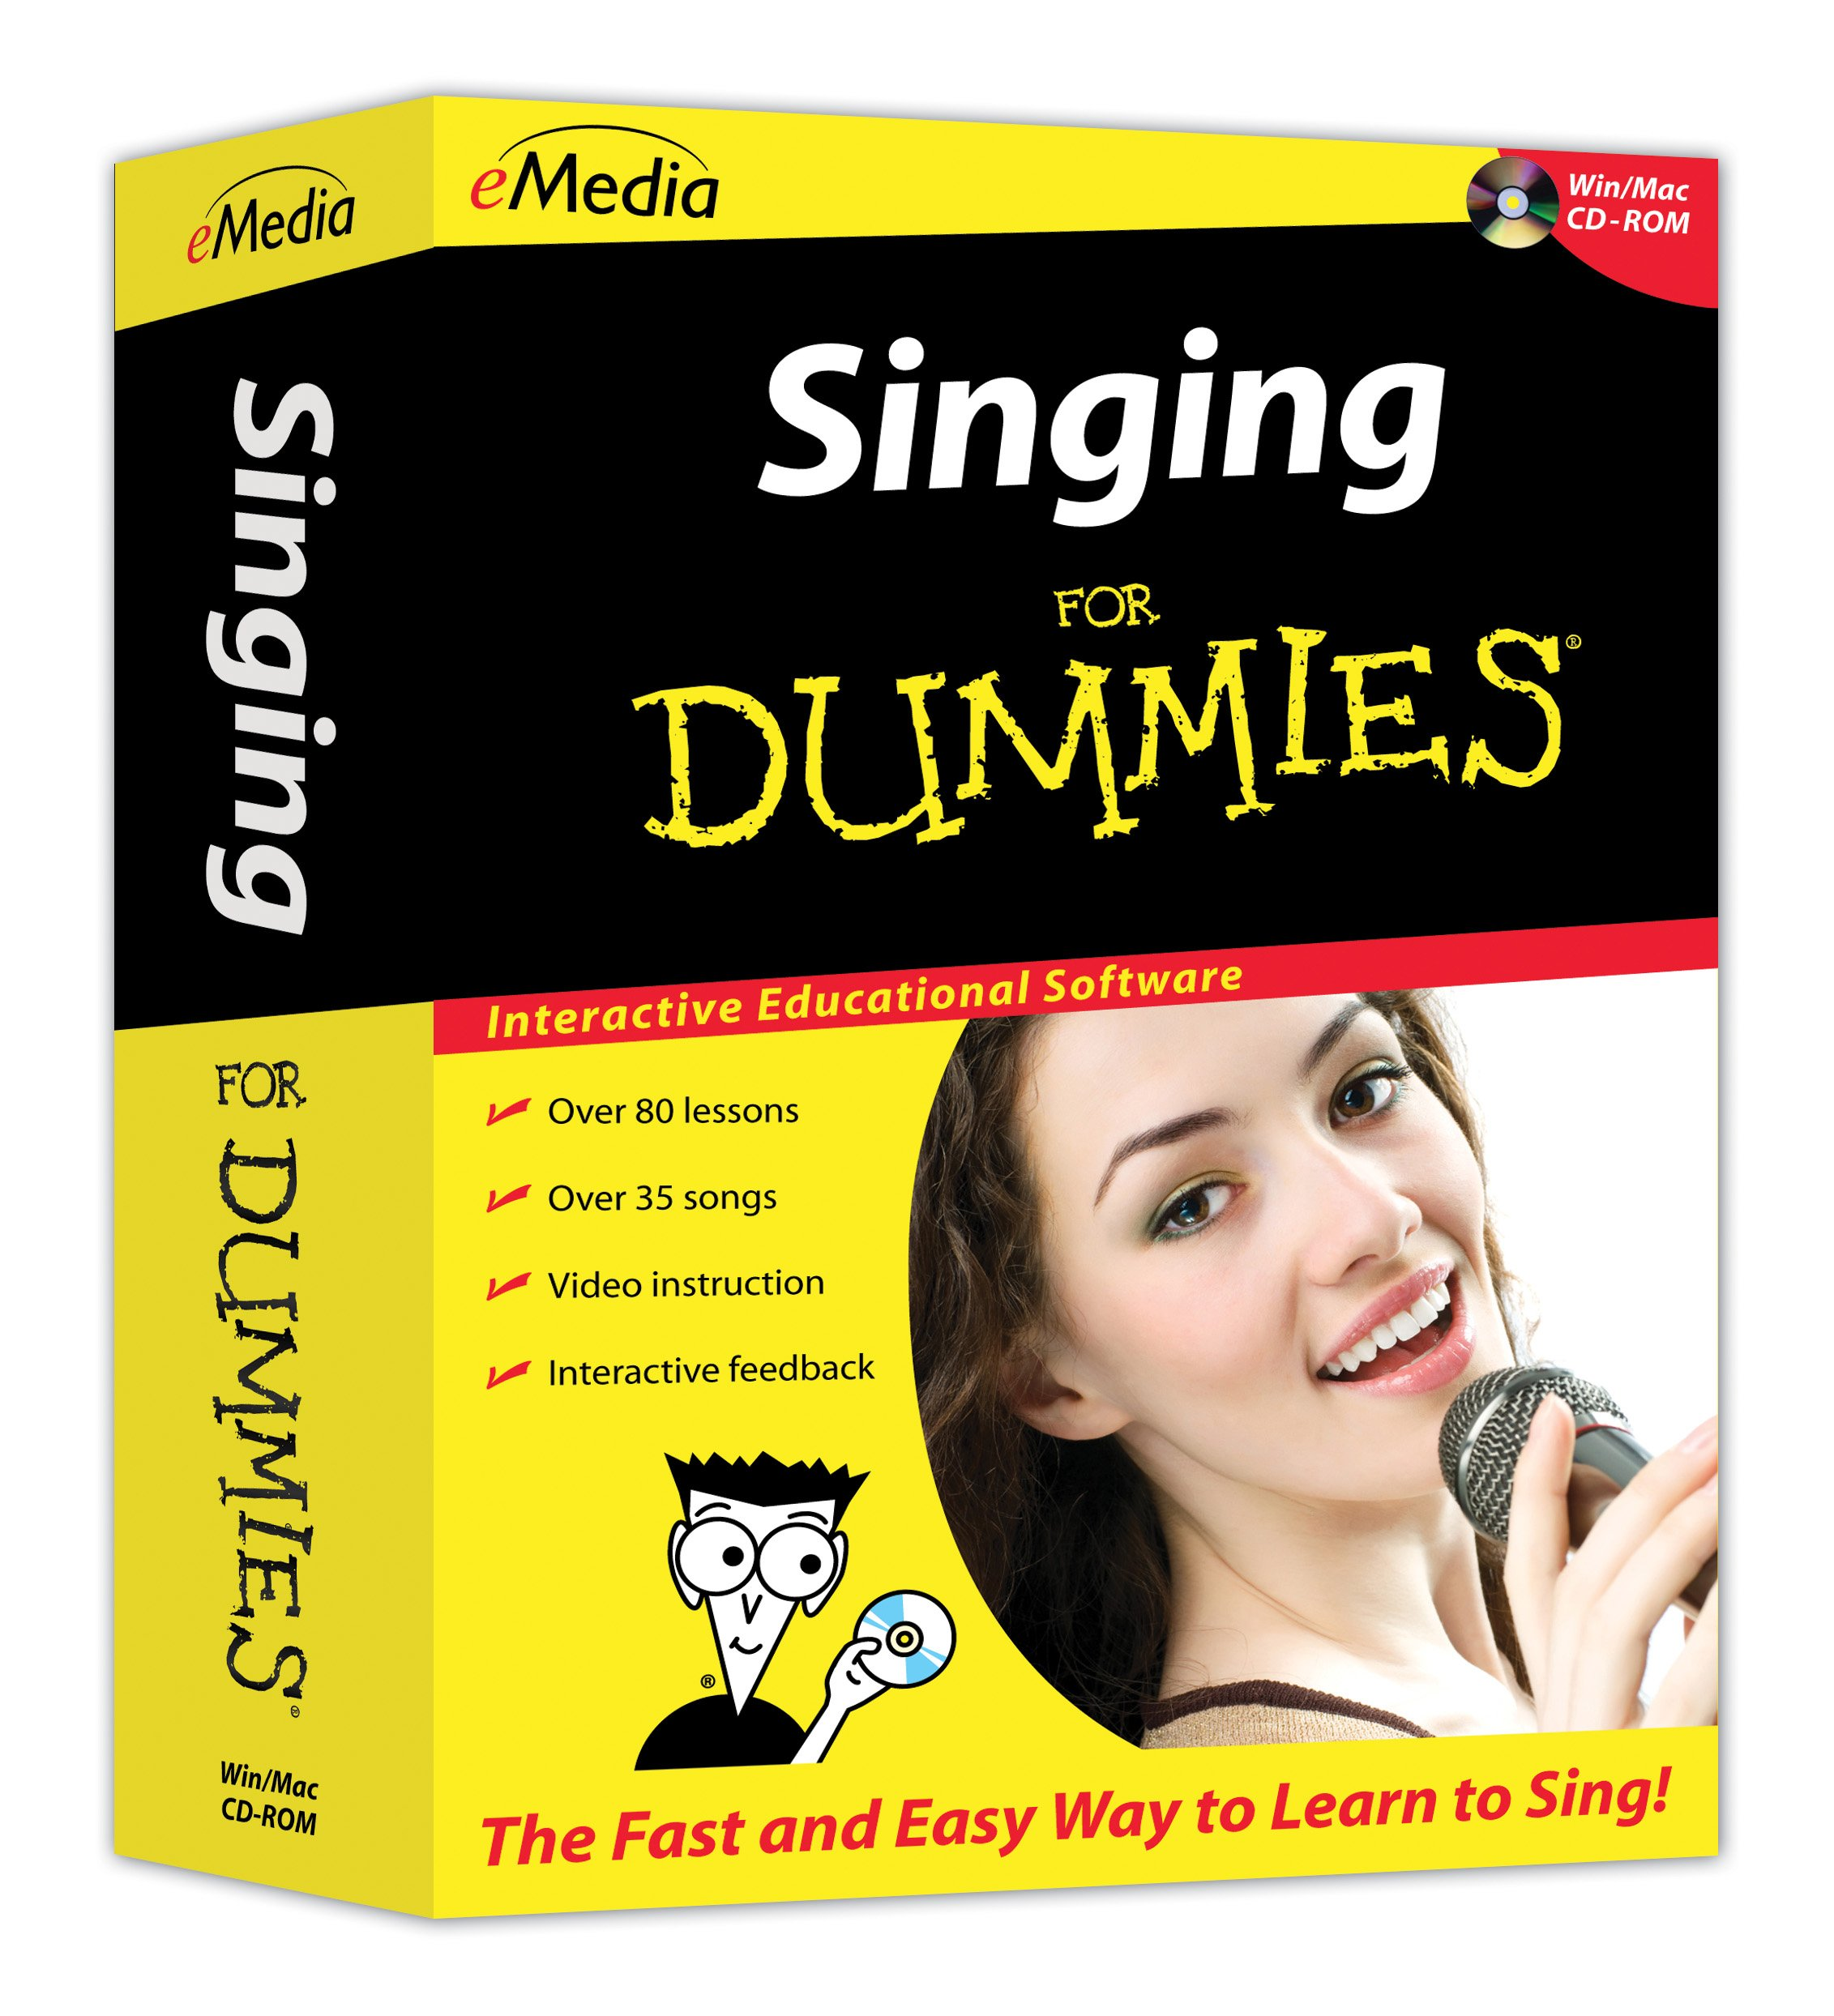 eMedia Singing For Dummies v2 by eMedia